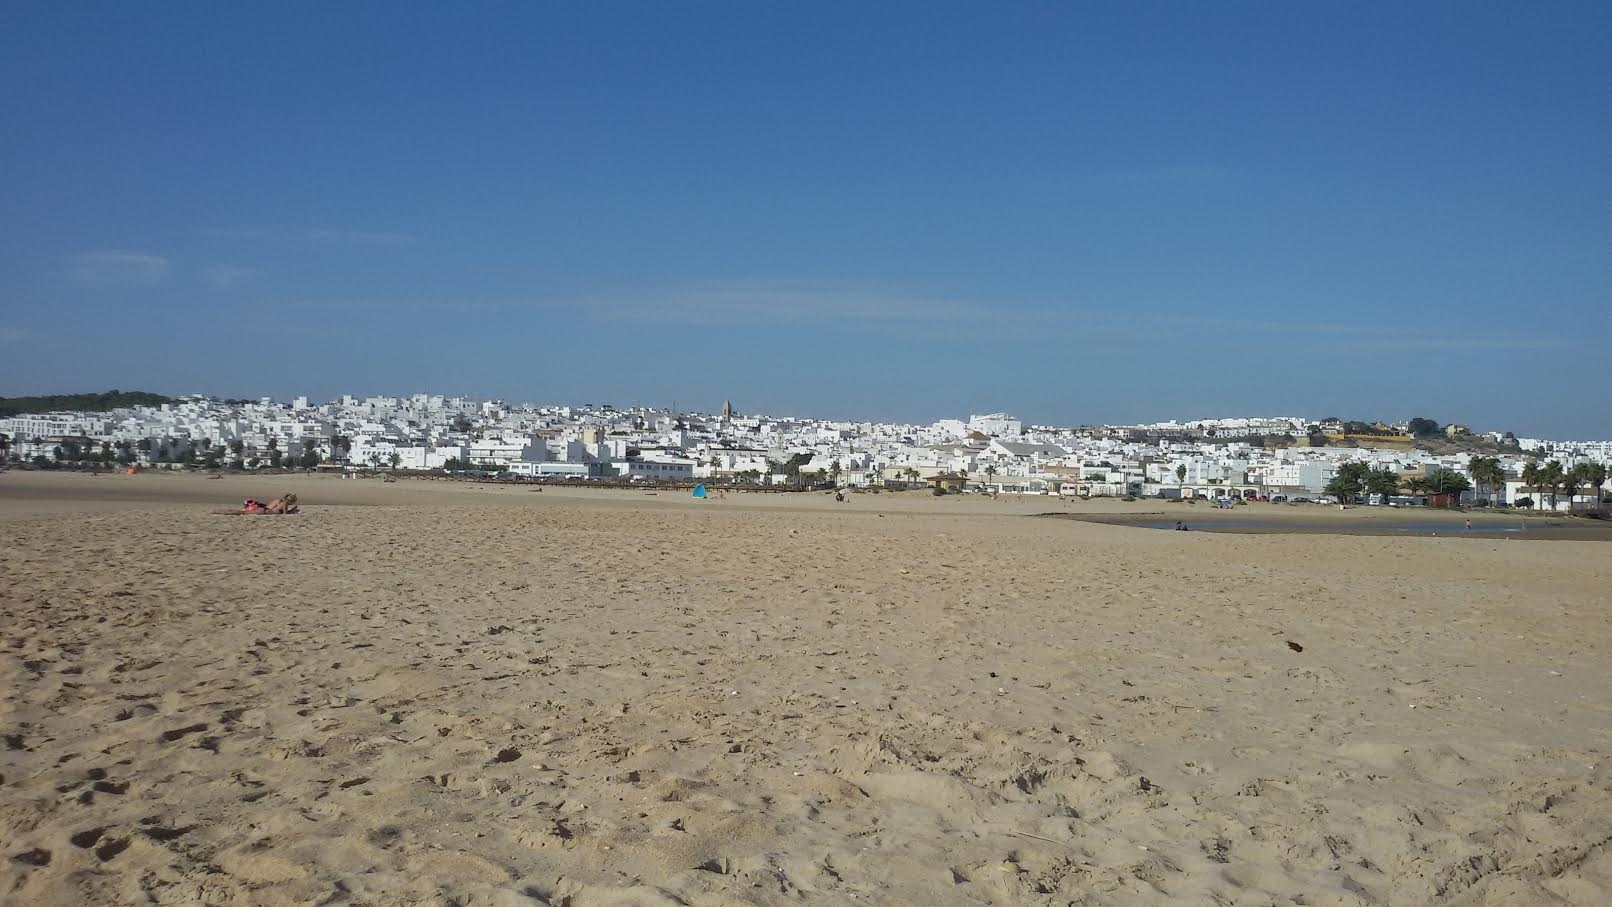 Cadiz and all its beaches